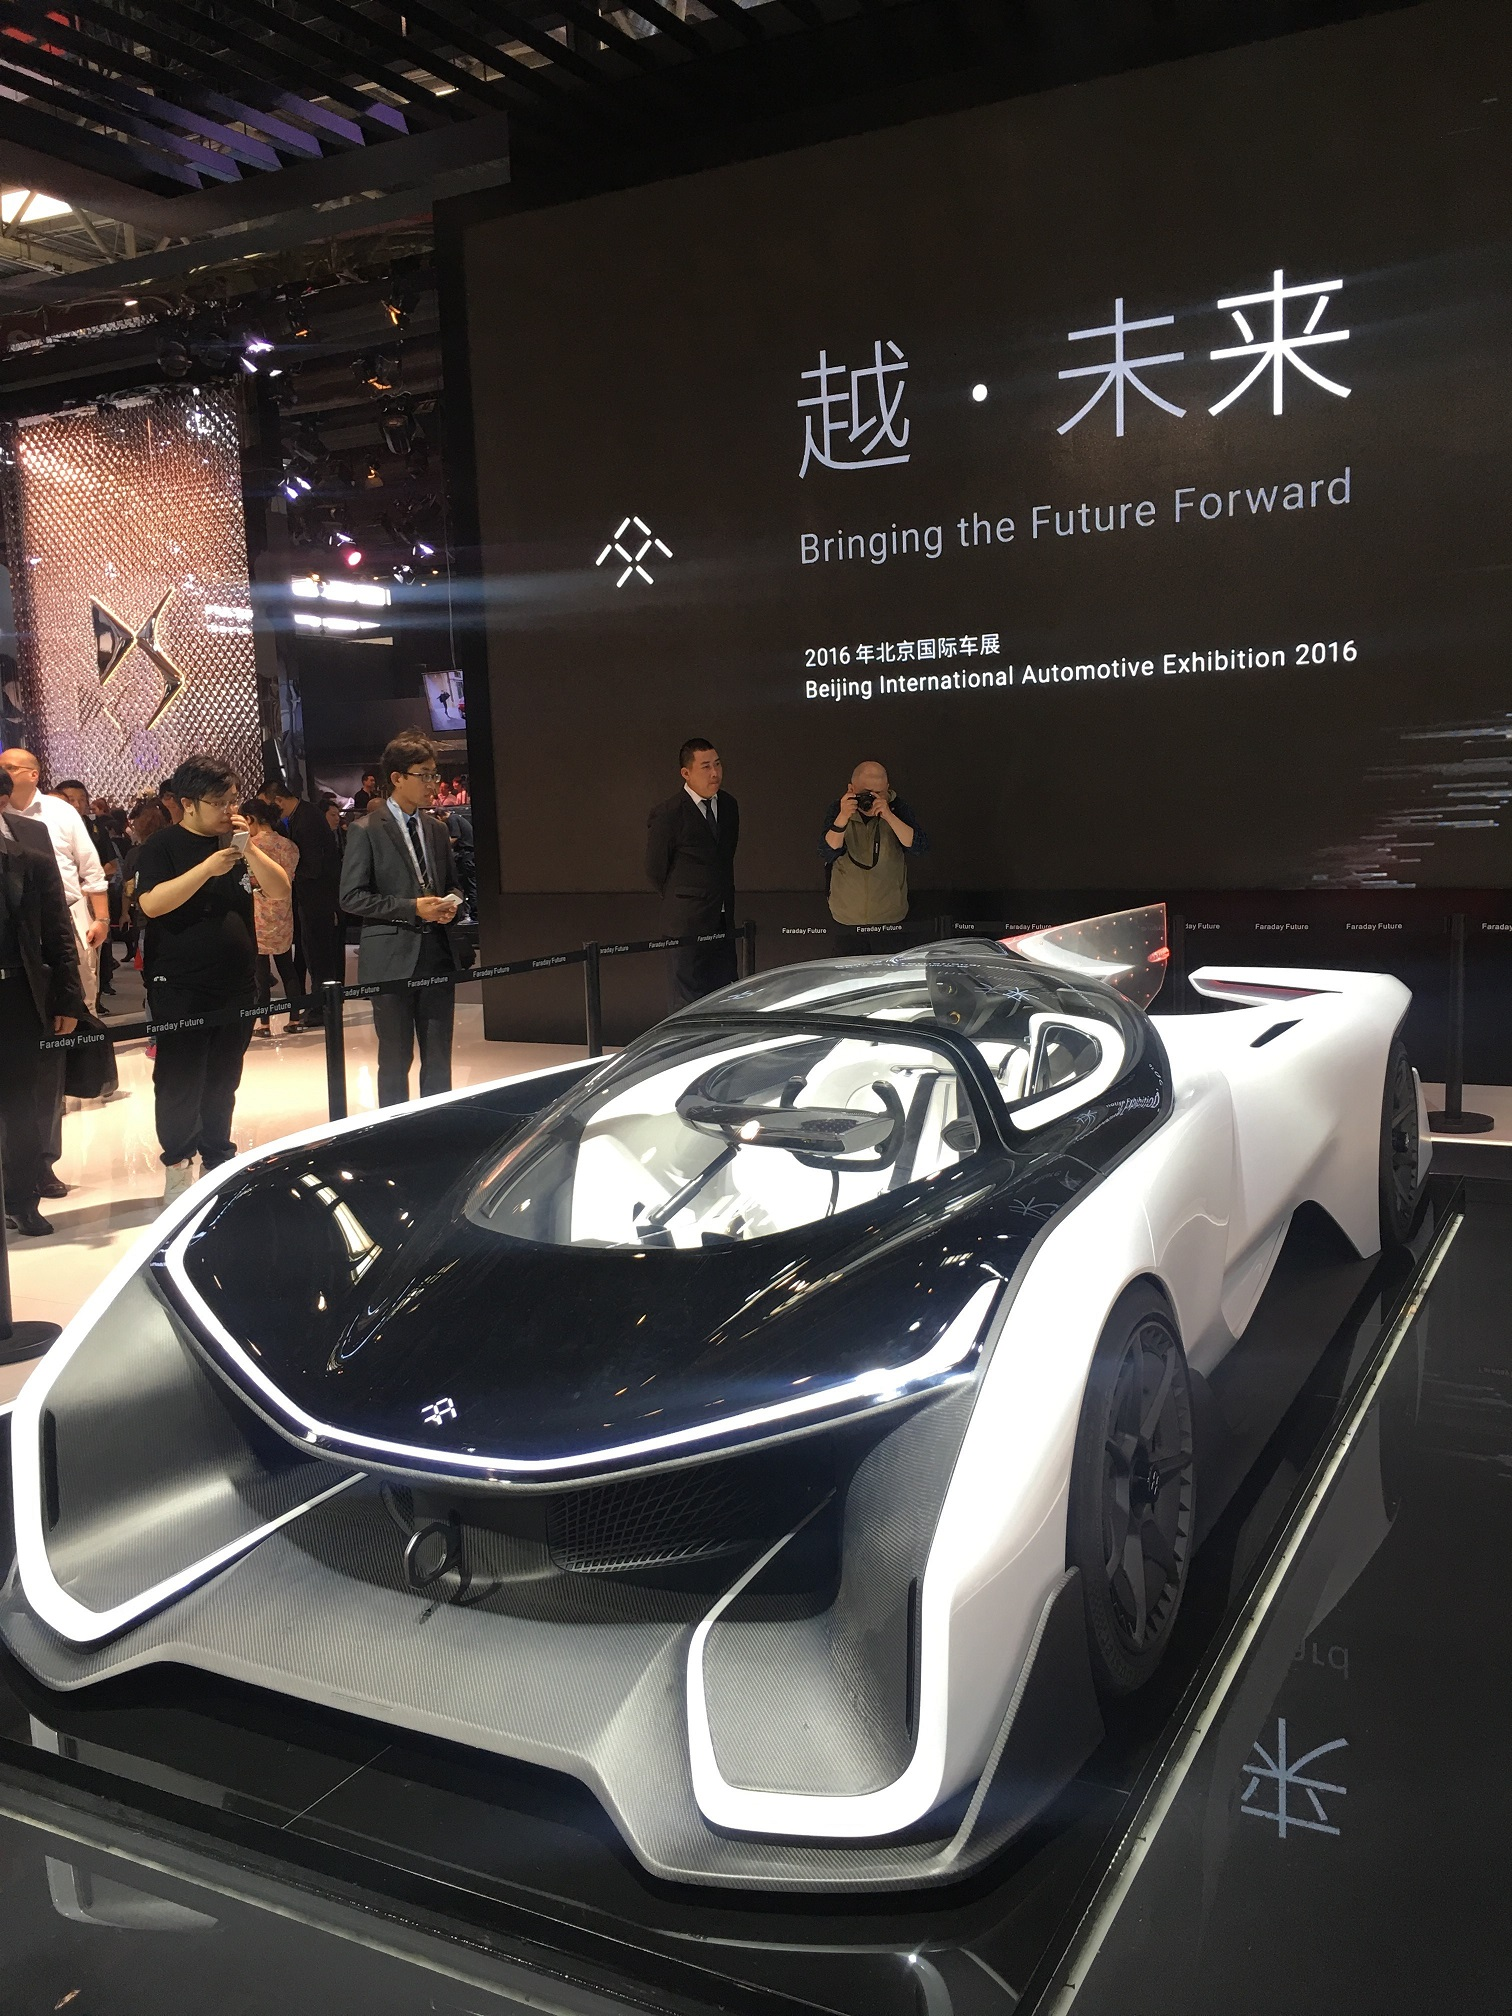 Faraday Future brought the FFZERO1 to Beijing, after first unveiling it in Las Vegas. Faraday Futures confirmed at the show that their first production model would be an SUV.